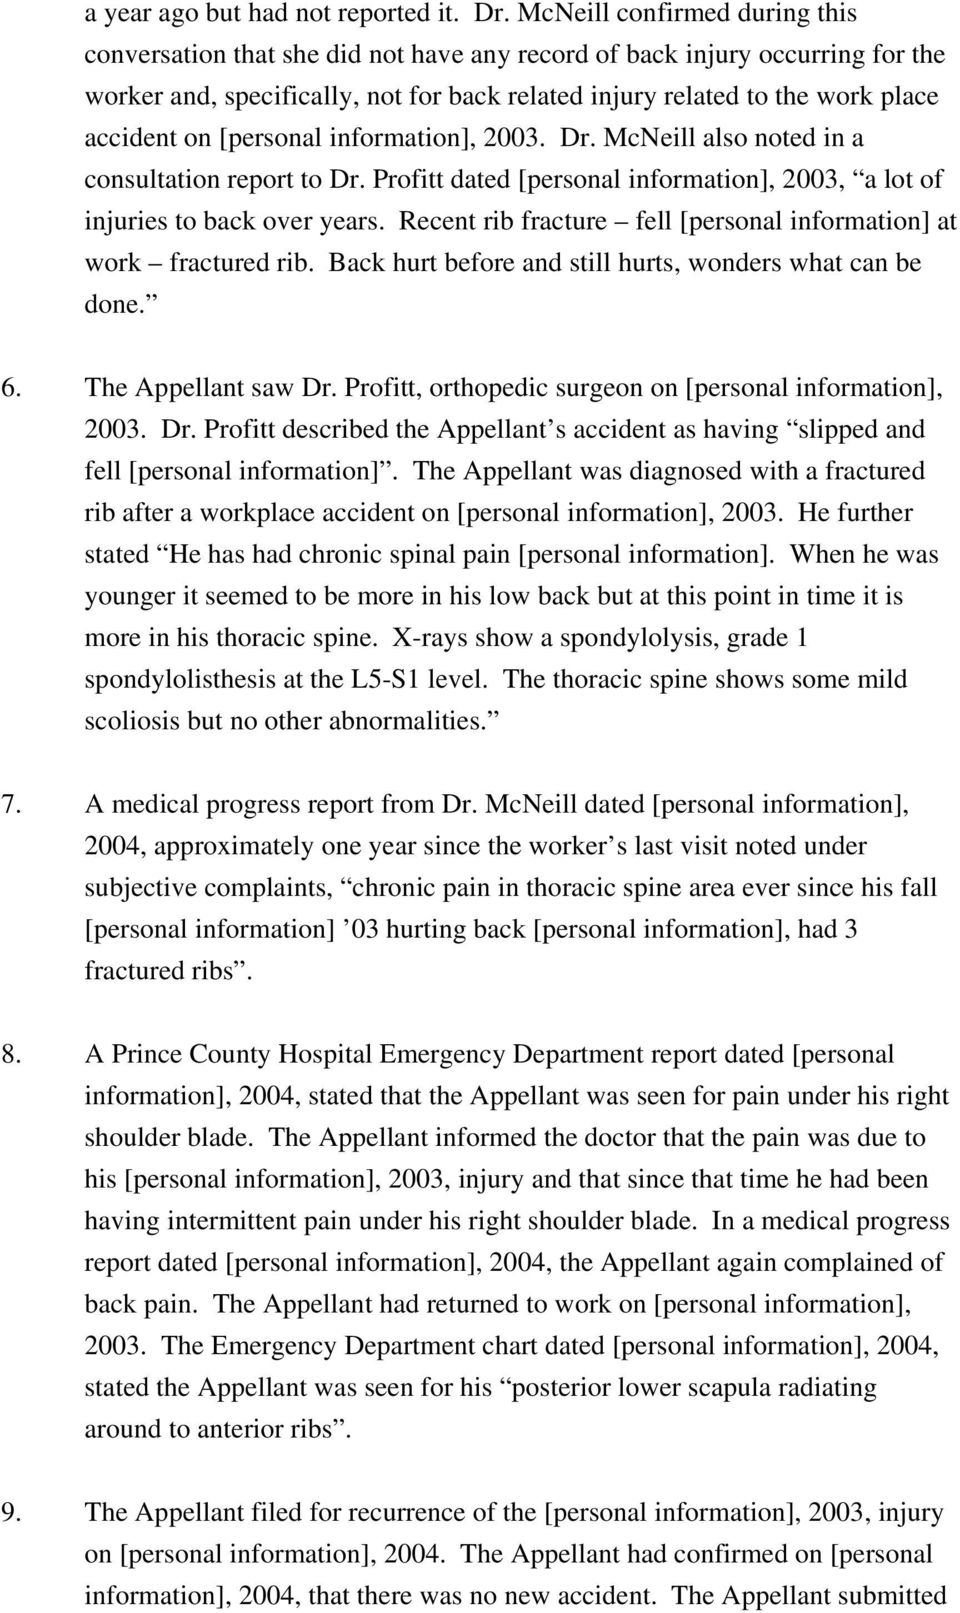 on [personal information], 2003. Dr. McNeill also noted in a consultation report to Dr. Profitt dated [personal information], 2003, a lot of injuries to back over years.